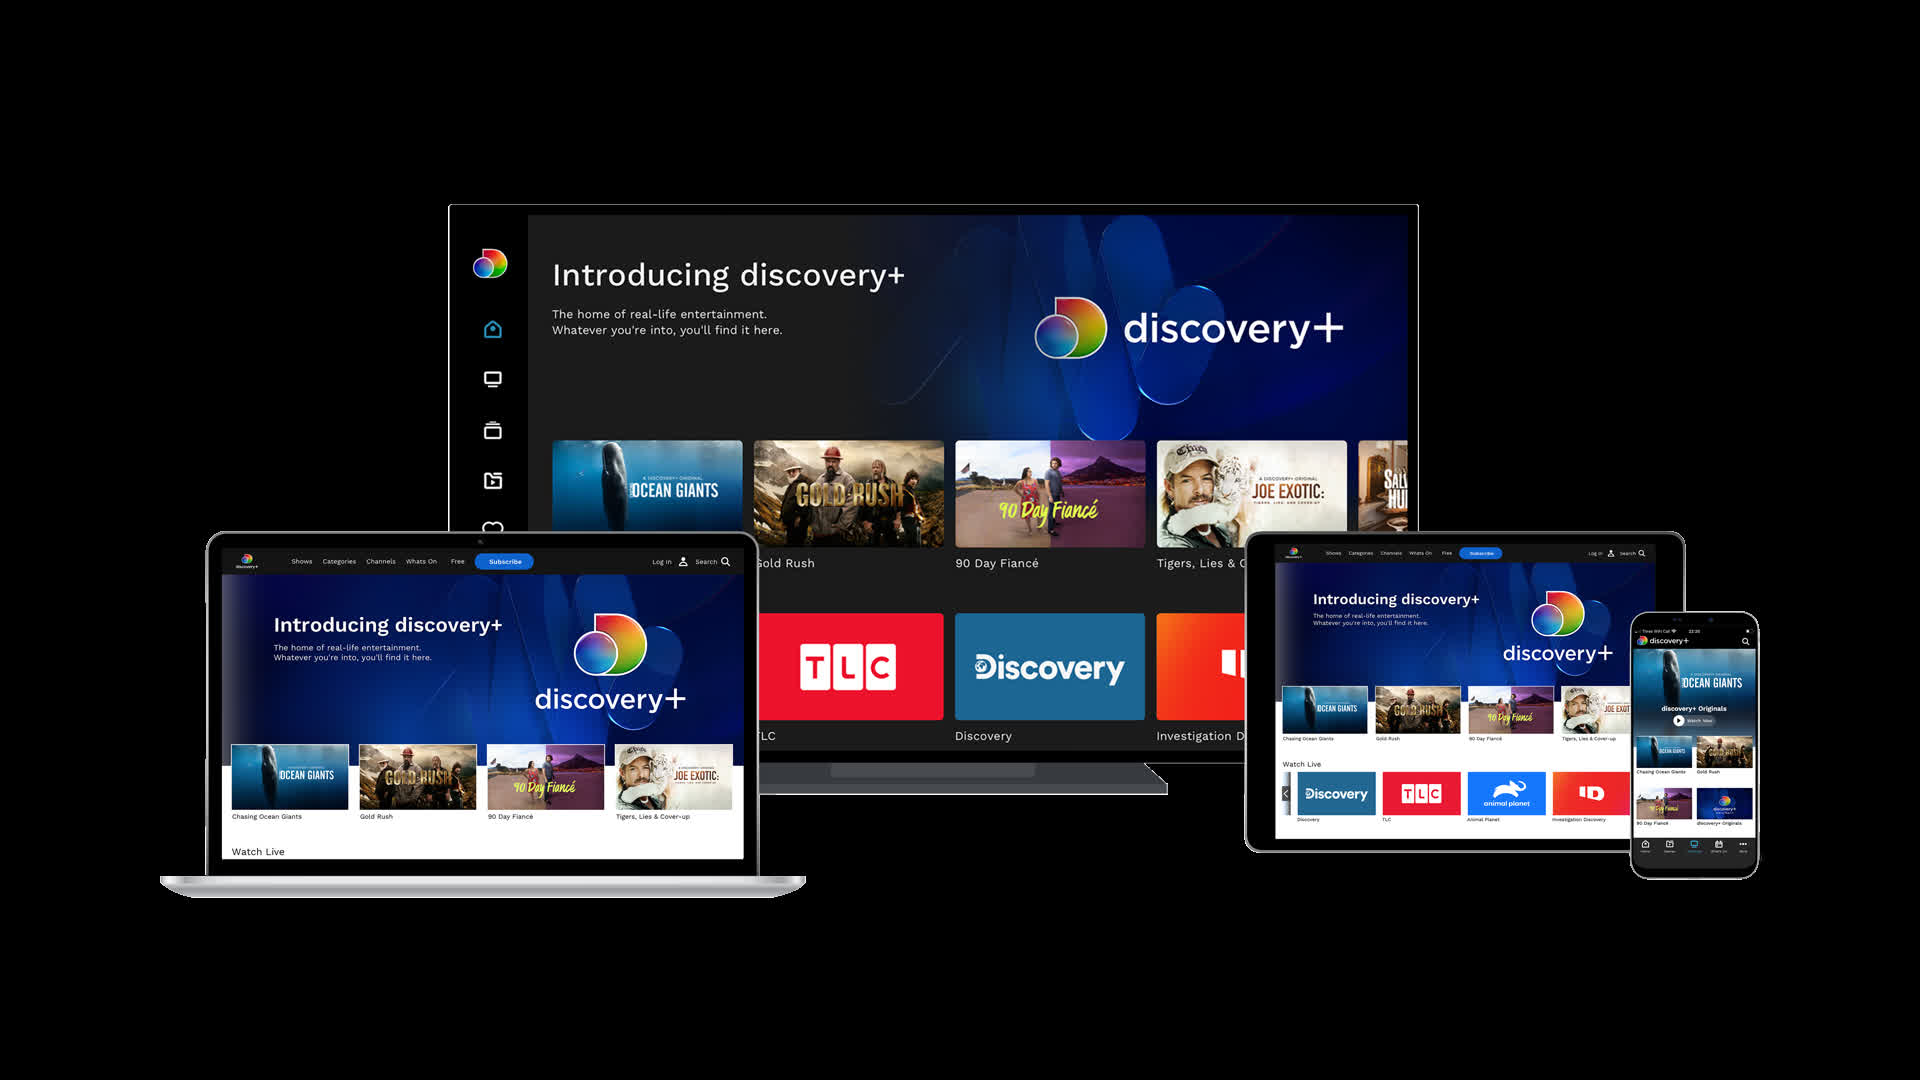 Discovery+ streaming service to launch in January, starts at $4.99 per month